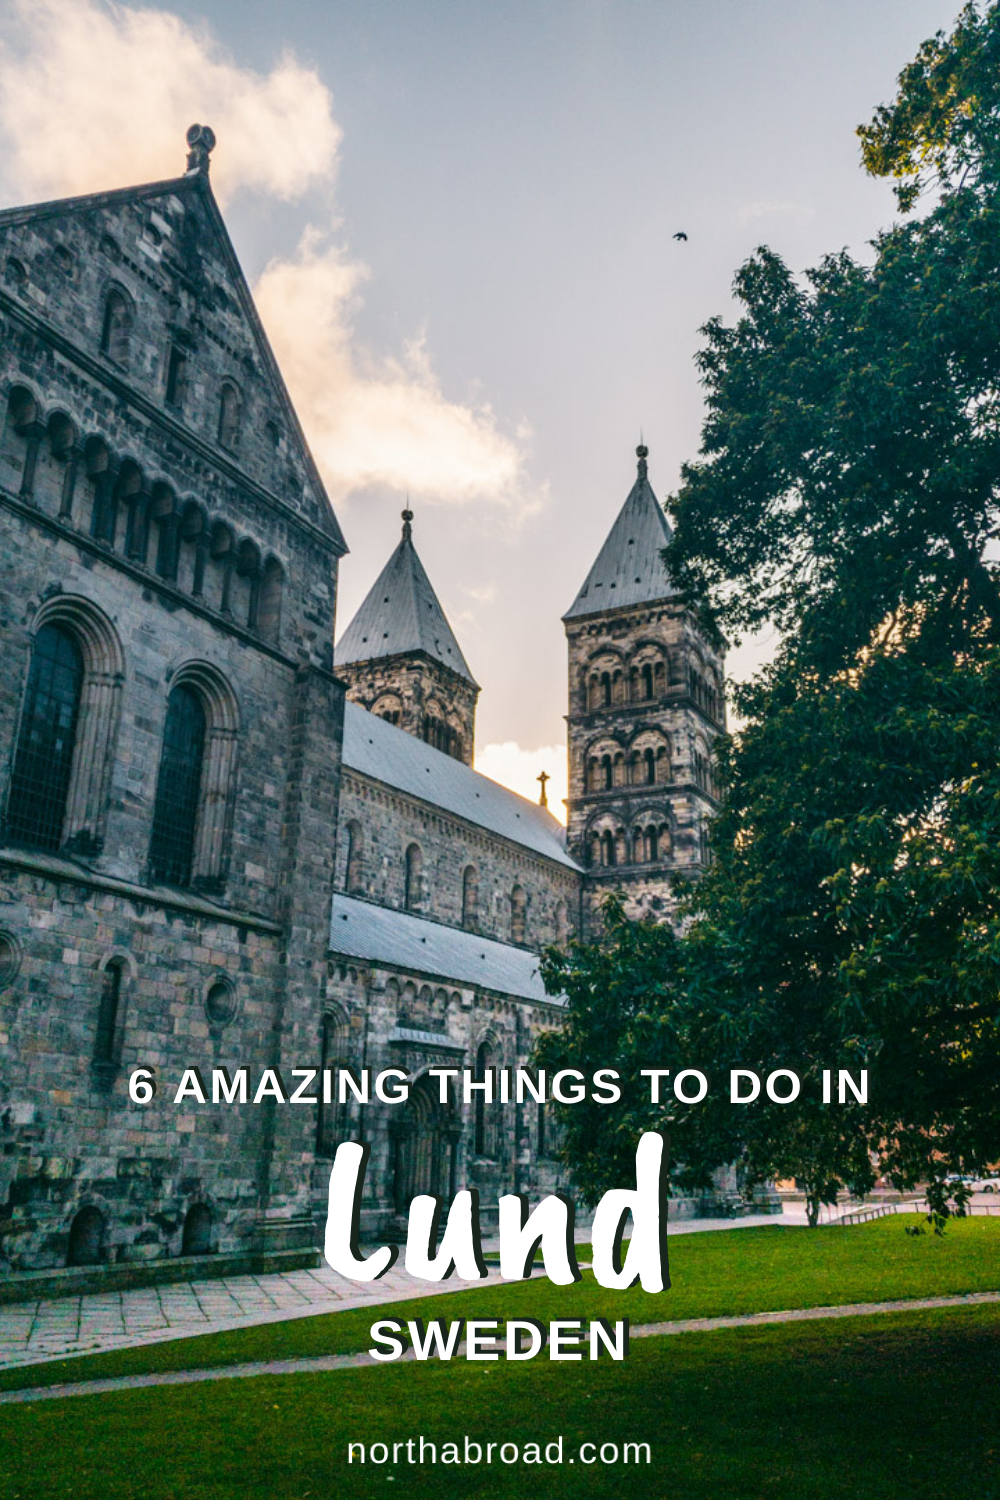 Amazing things to do in Lund, Sweden